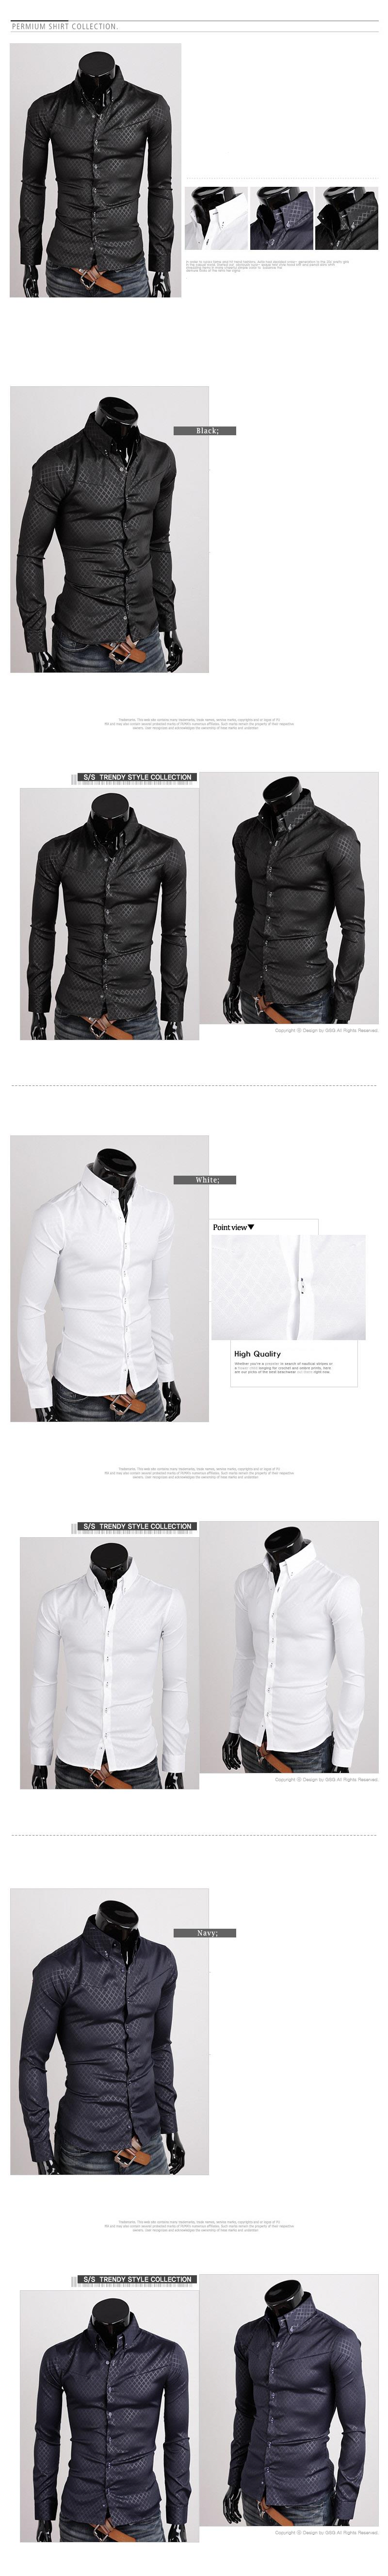 Korean Fashion Men's Slim Fit Casual Long-sleeved Obscure Quilted Shir